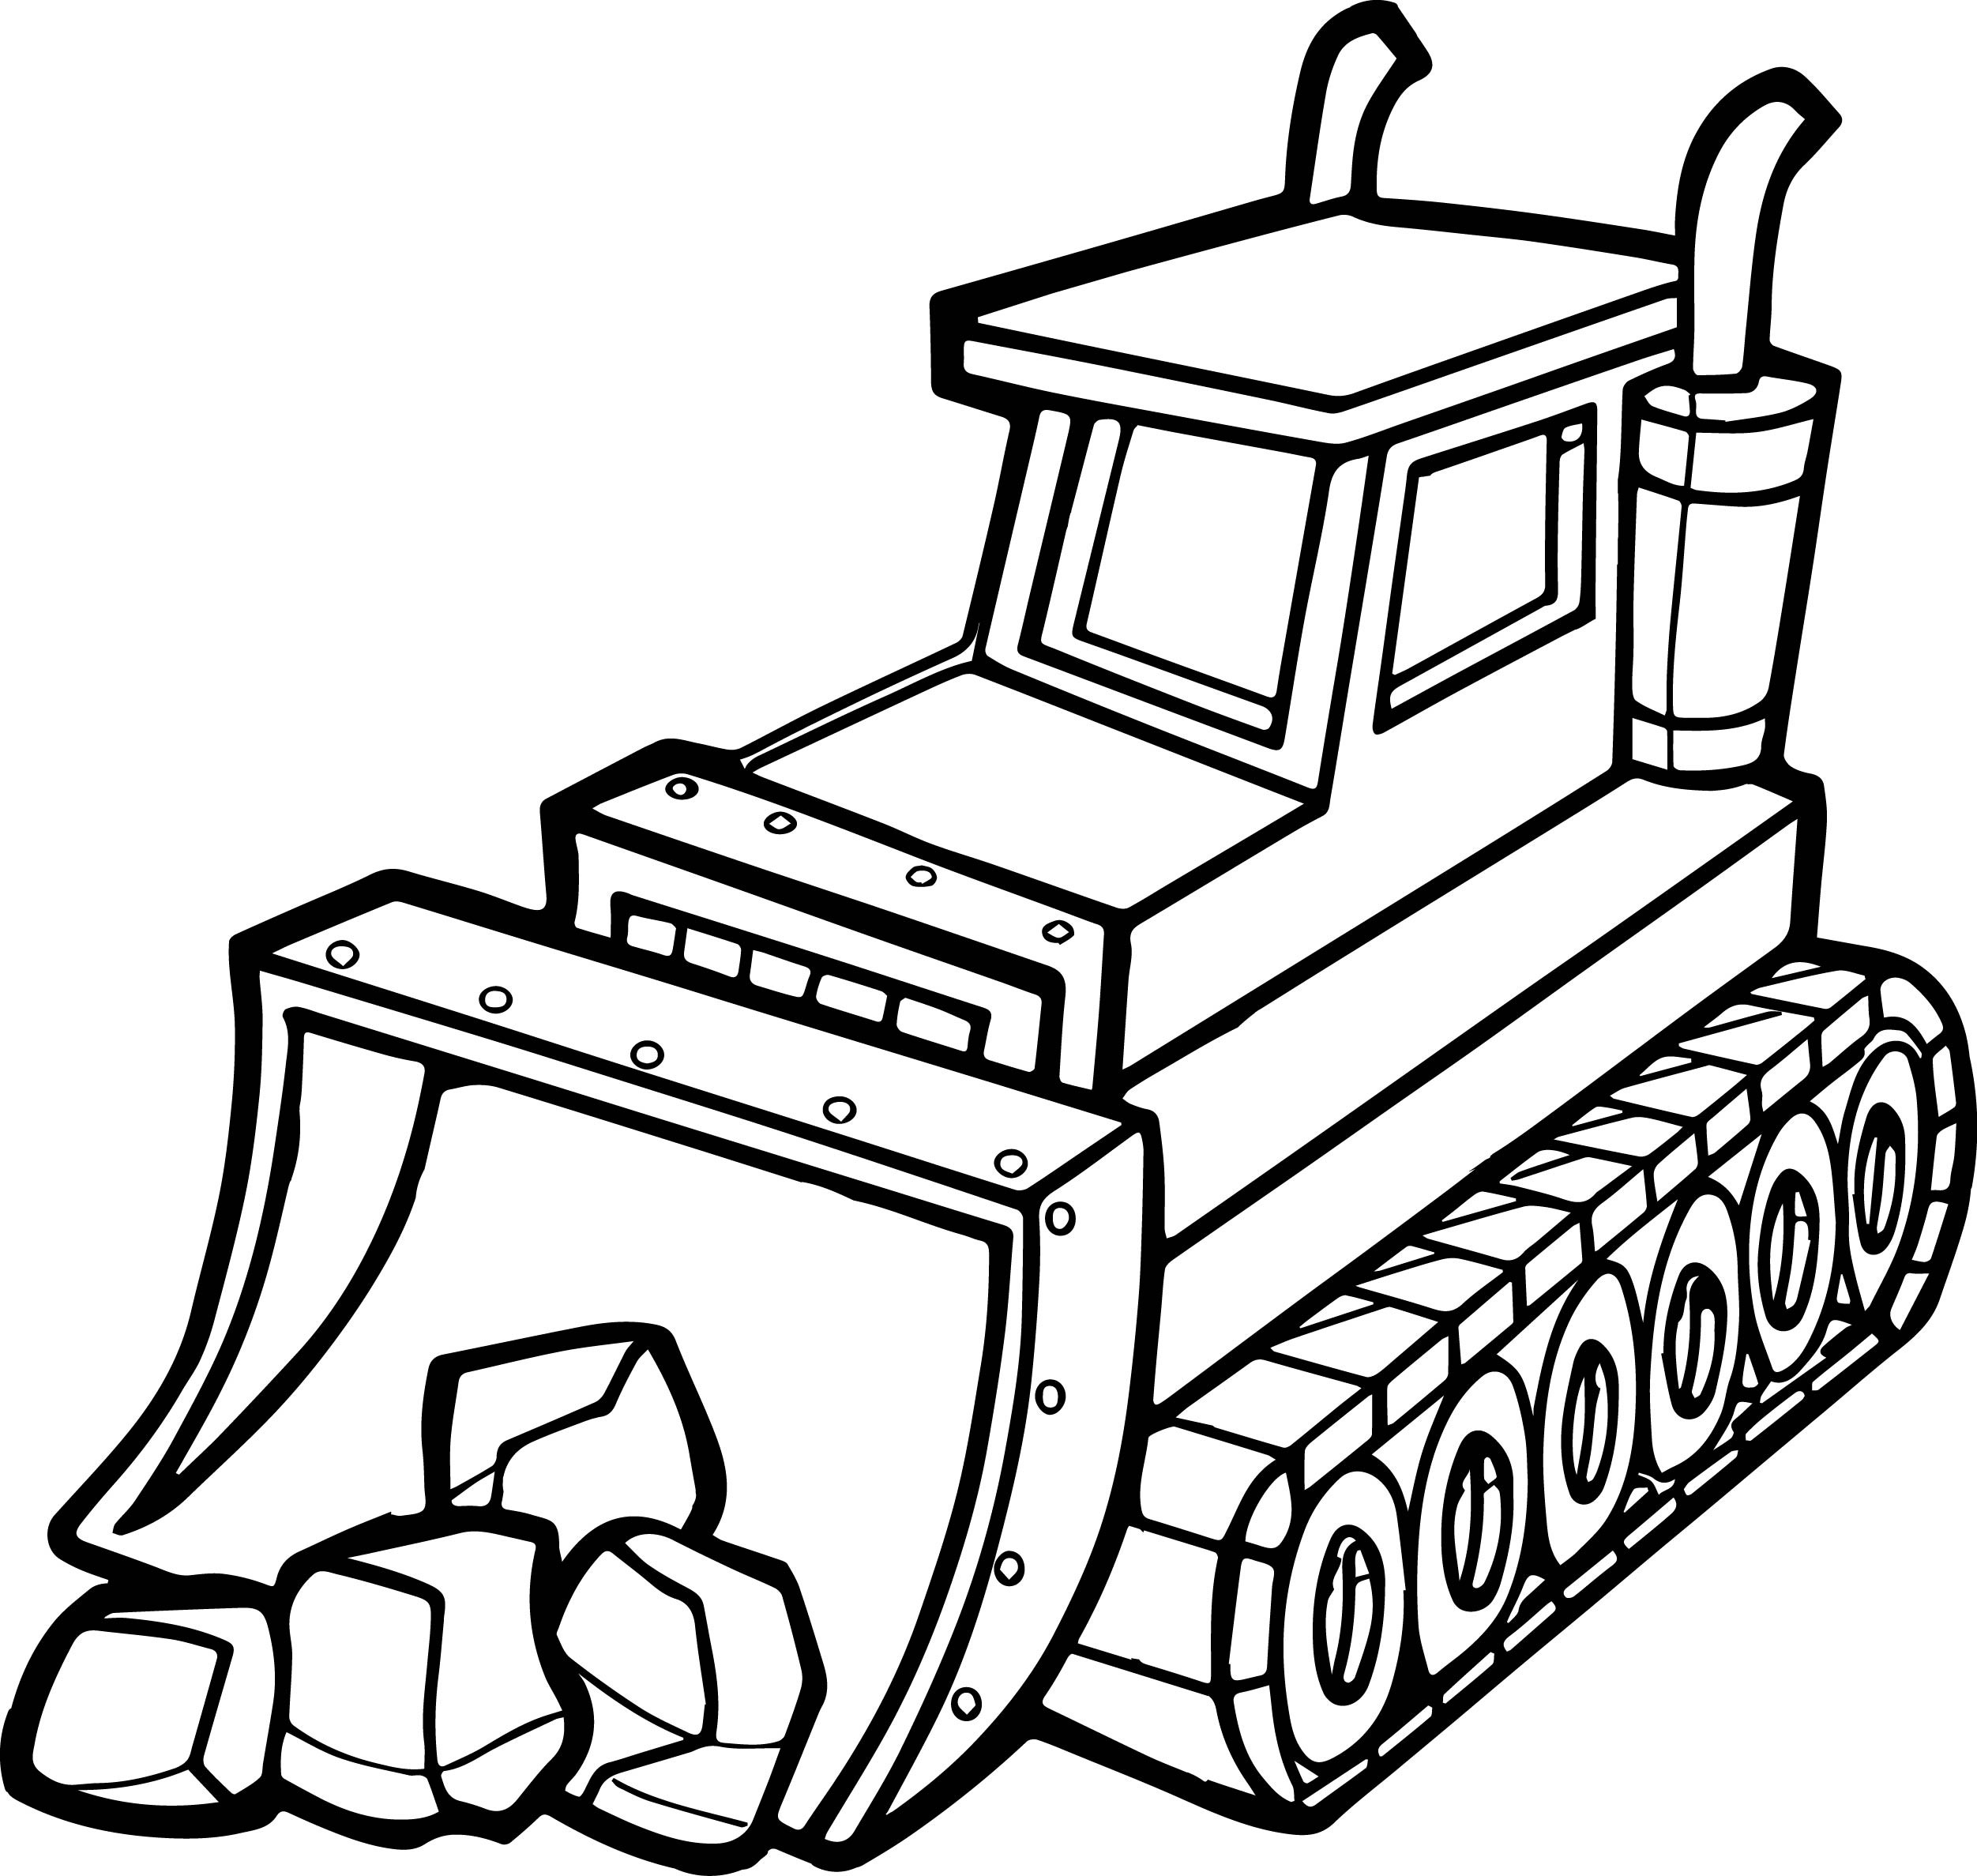 construction coloring page construction coloring pages kidstoddlers 6 funnycrafts page coloring construction